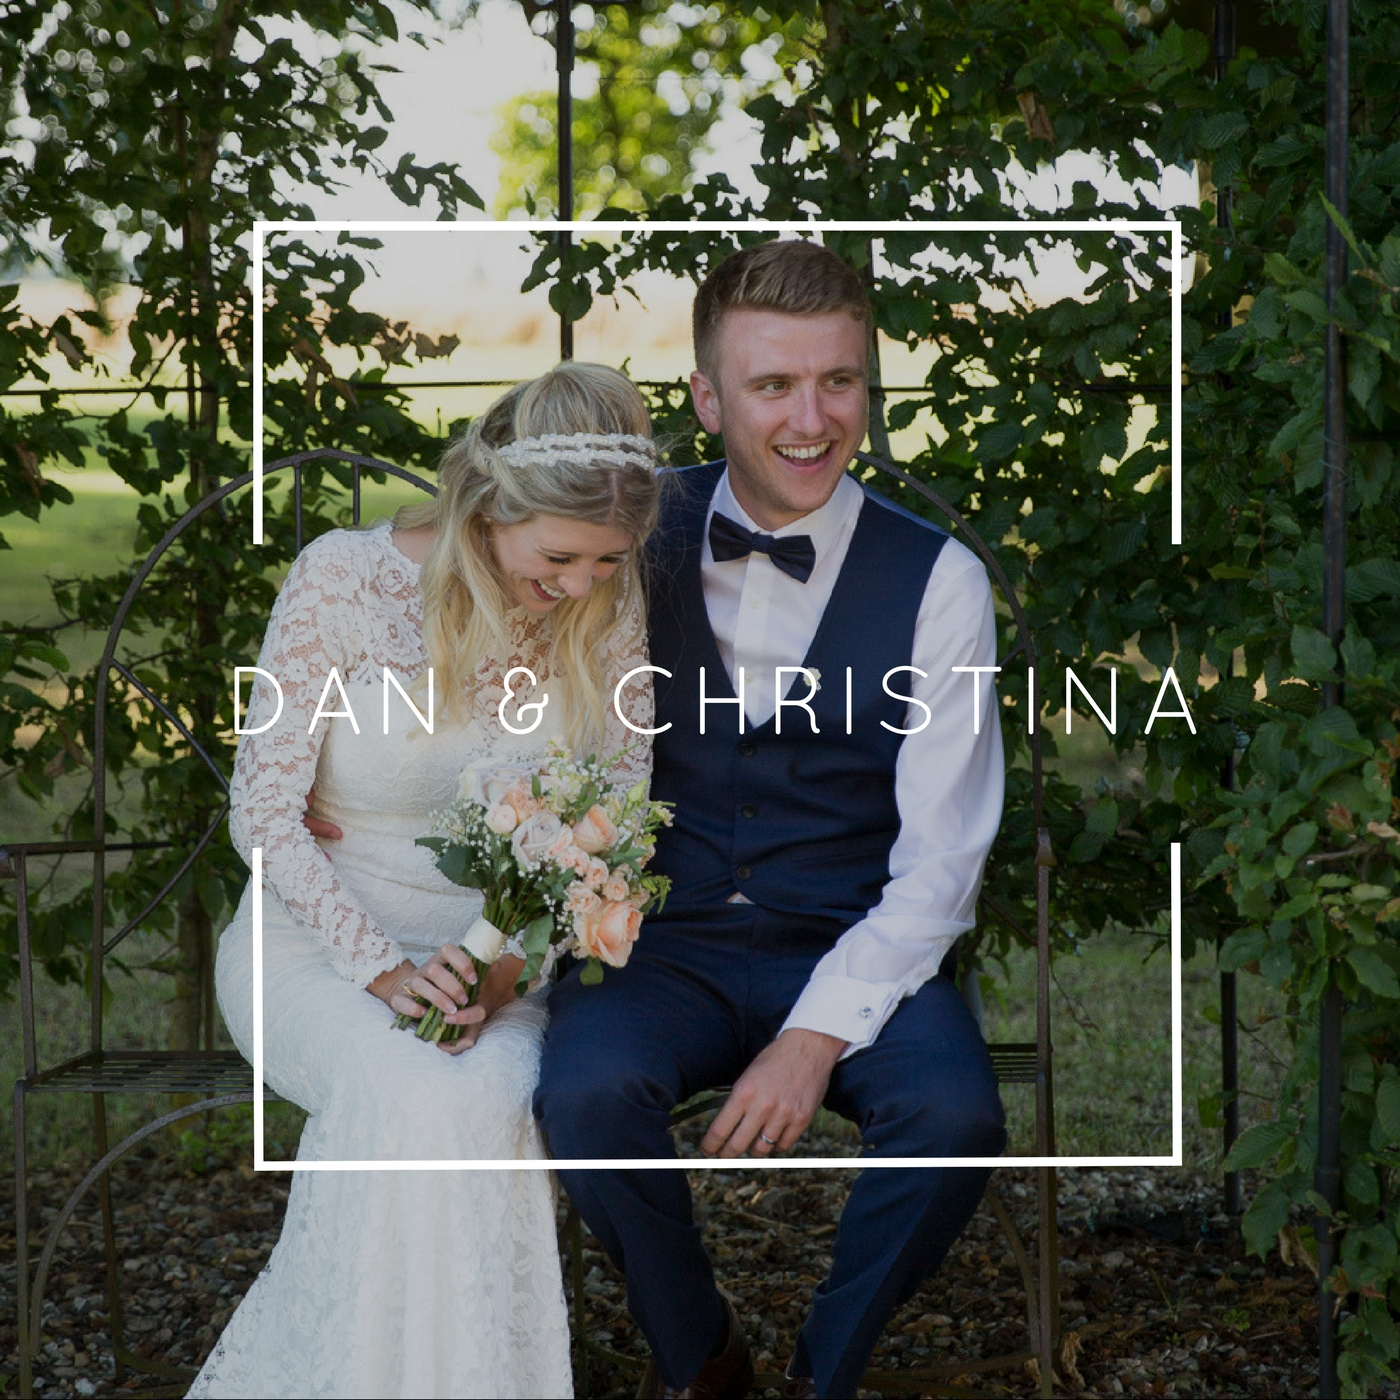 Dan and Christina fun wedding film by Veiled Productions award winning wedding videographer Cambridgeshire